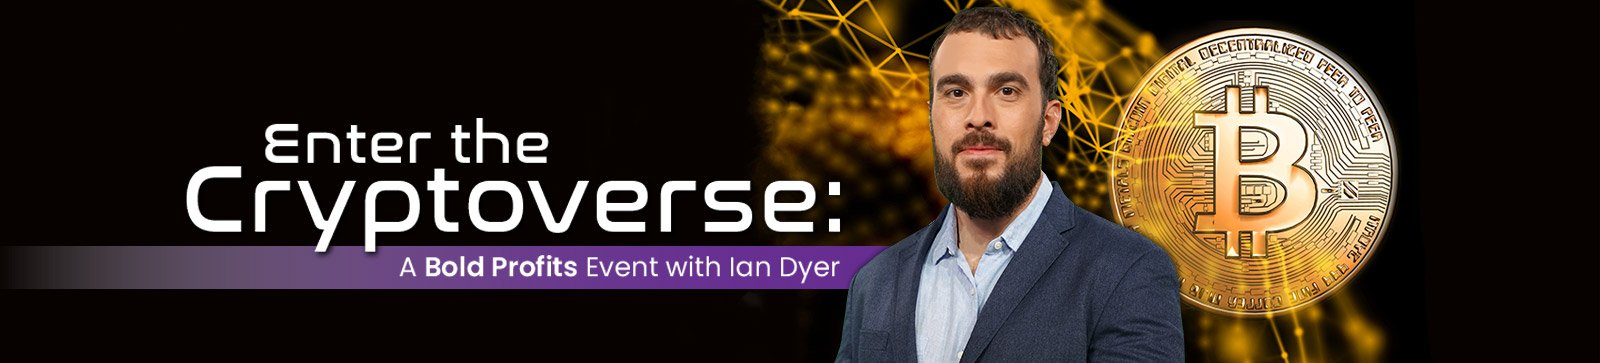 Enter the Cryptoverse – A Bold Profits Event with Ian Dyer